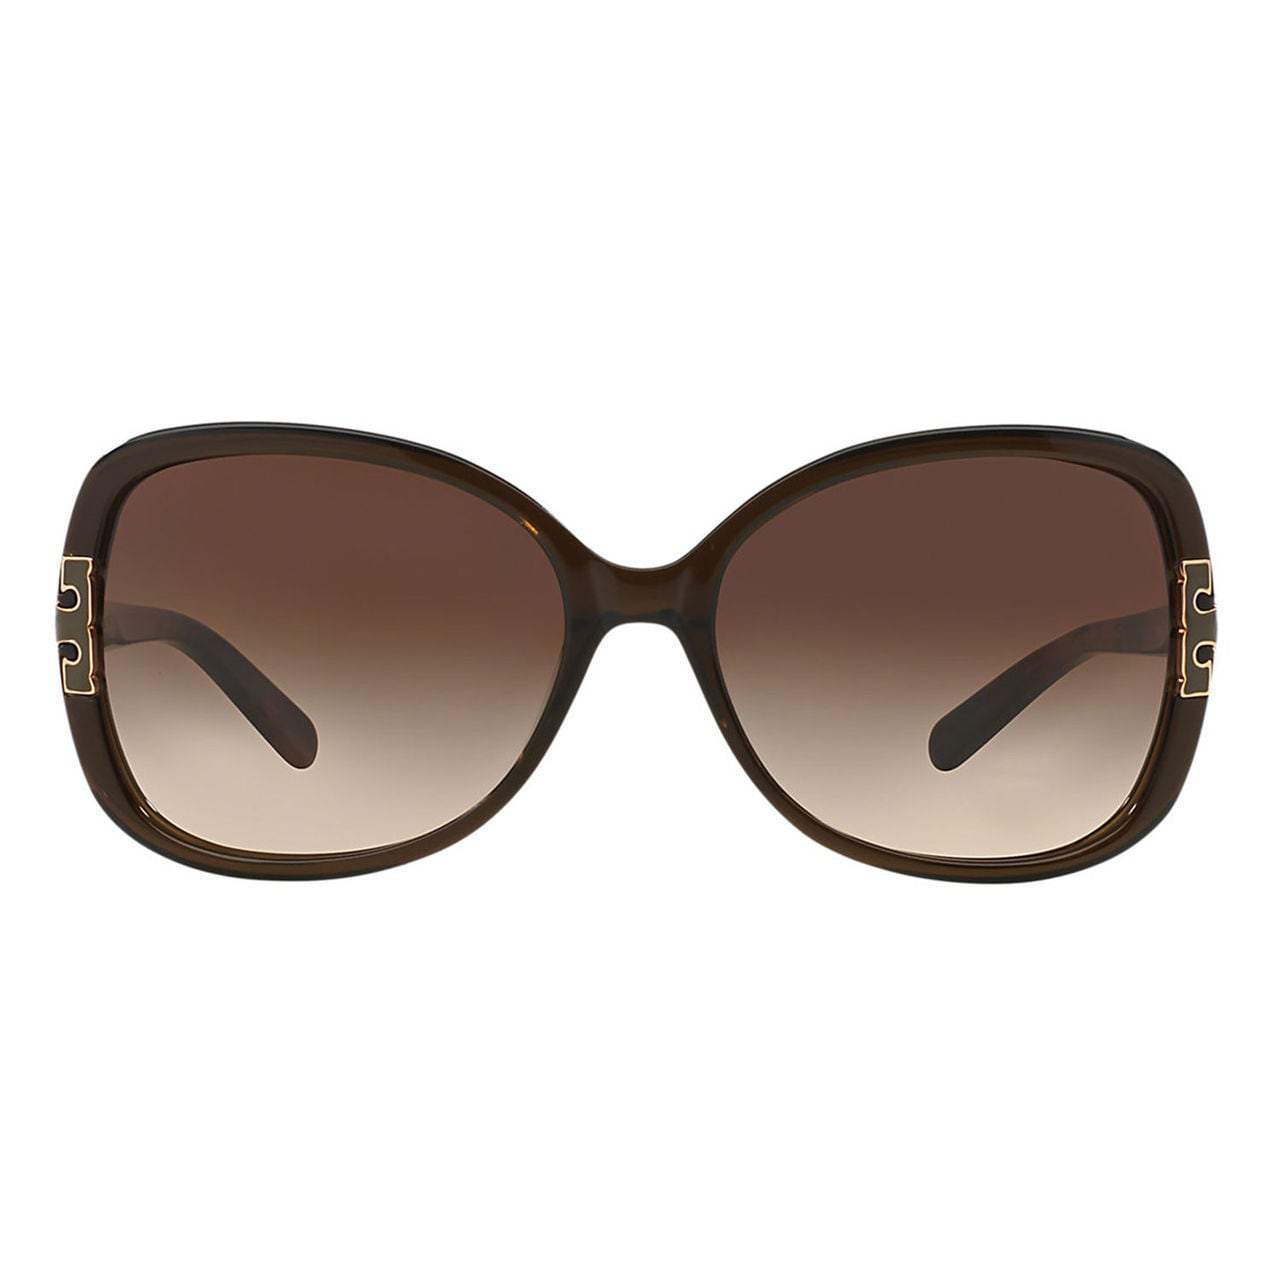 a6253691f107 Shop Tory Burch Women's TY7022 110913 Plastic Square Sunglasses - Olive -  Free Shipping Today - Overstock - 10237865